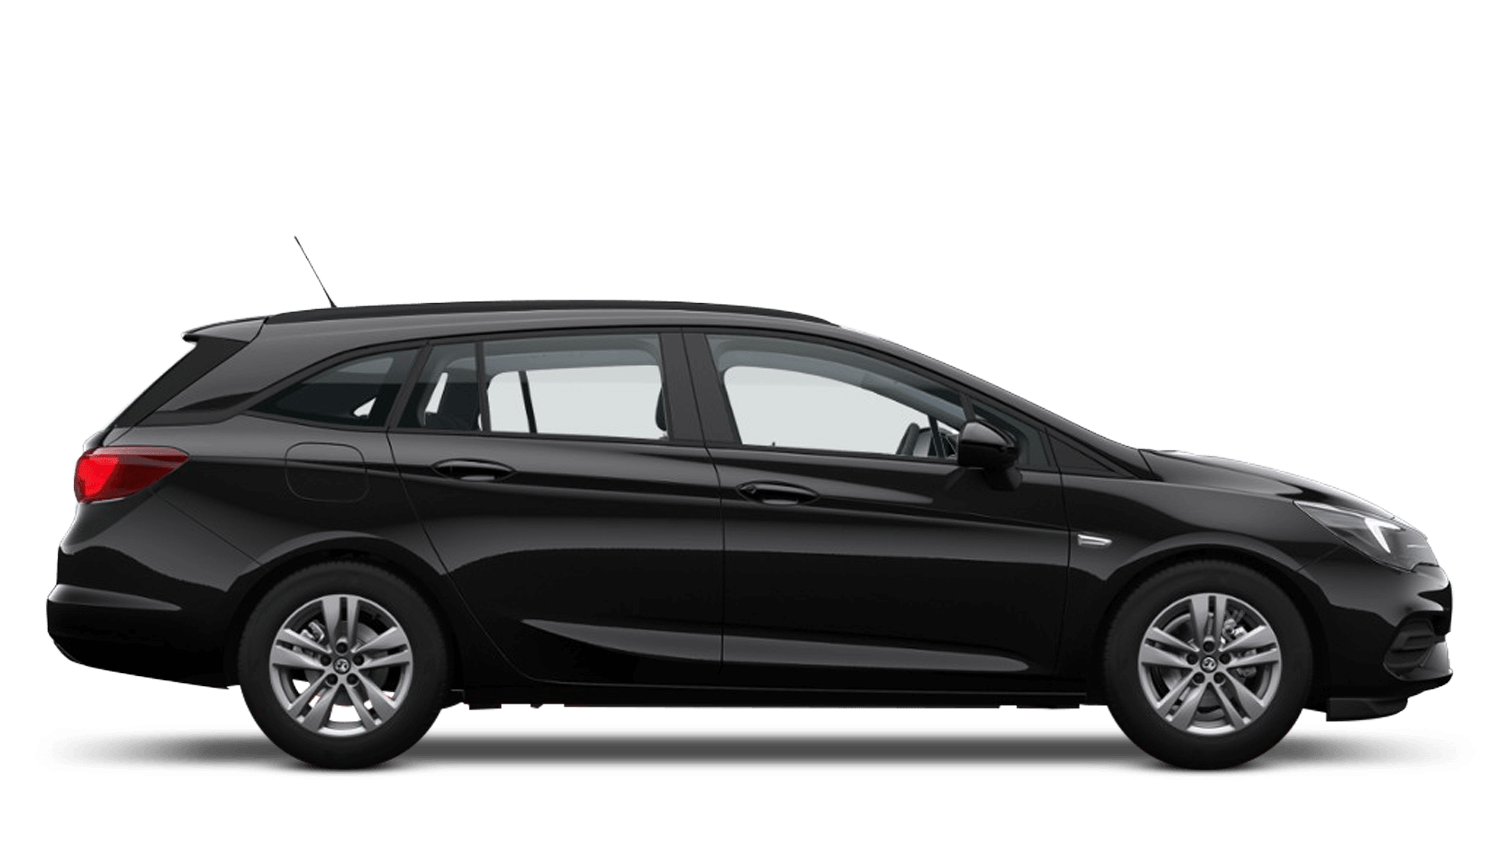 Mineral Black (Metallic) New Vauxhall Astra Sports Tourer